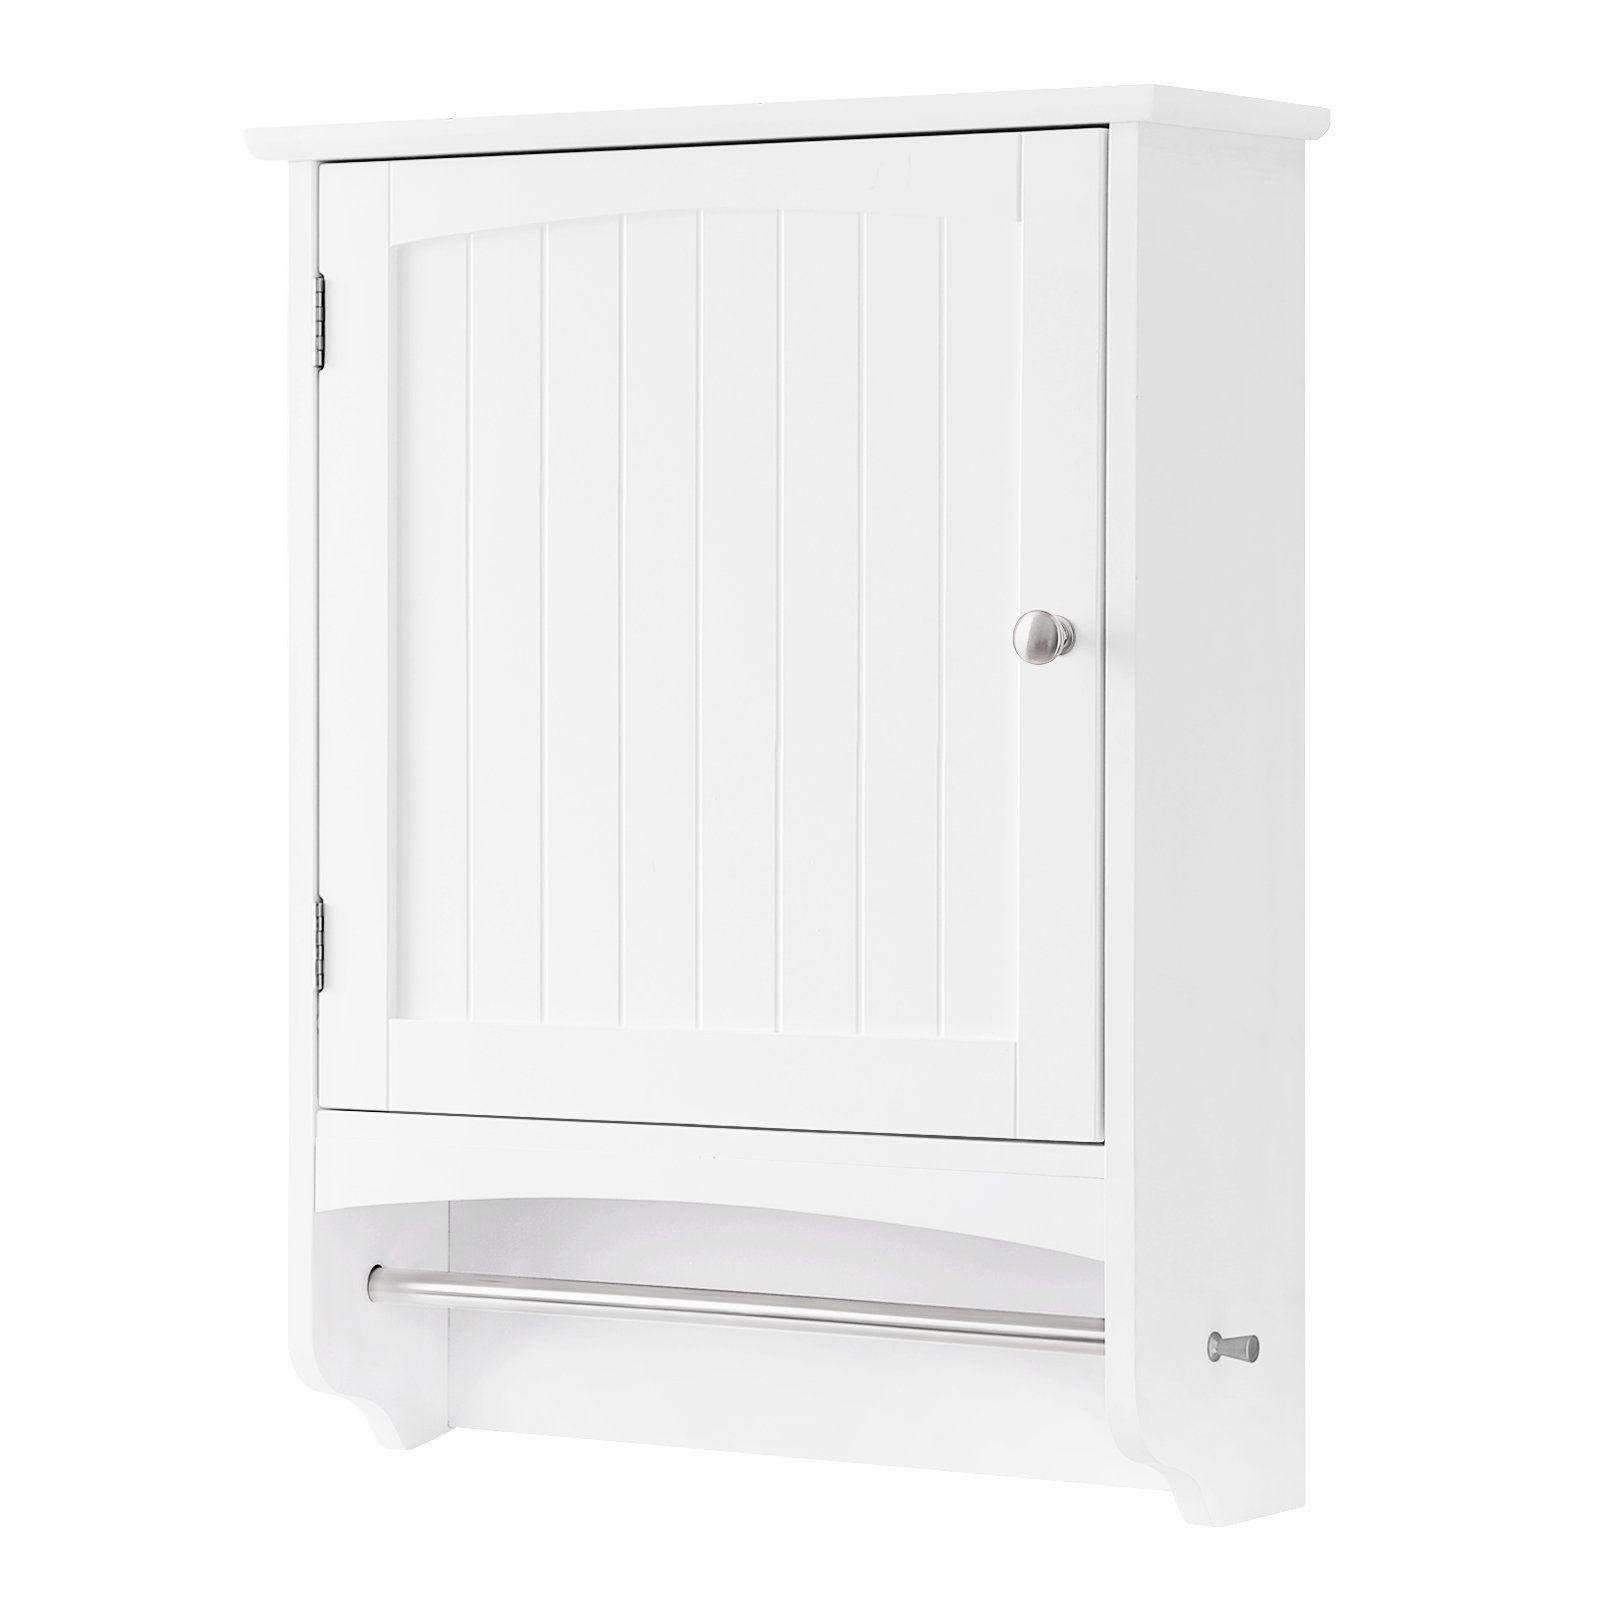 VASAGLE Wall Cabinet, Hanging Bathroom Storage Cabinet with Rod and Adjustable Shelf, Medicine Cabinet, Wooden, White 18.9 x 6.3 x 25.6 Inches UBBC22WT by VASAGLE